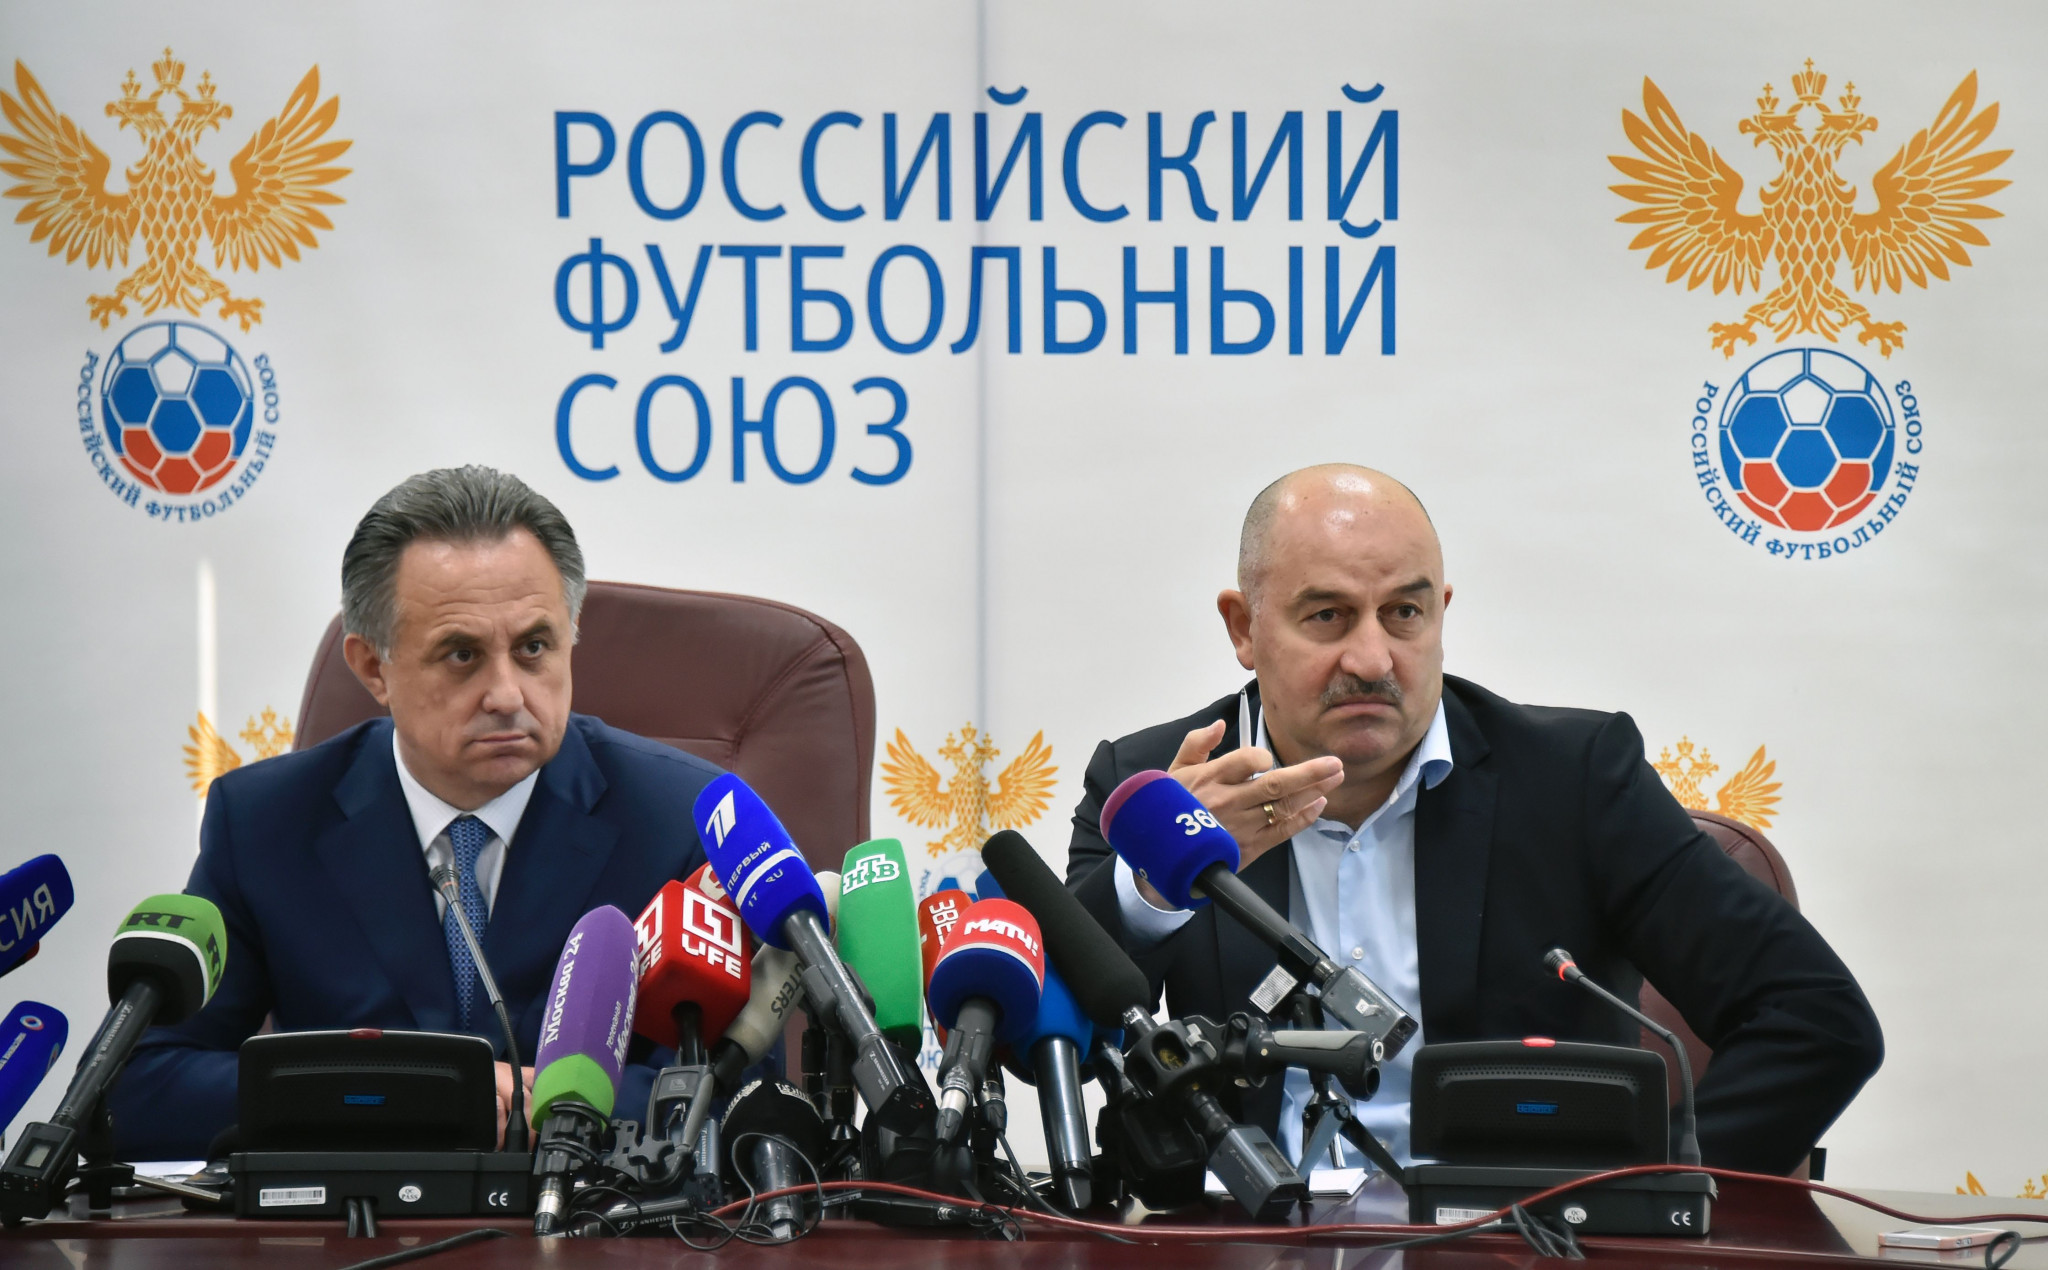 Vitaly Mutko, left, resigned from his role as President of the Russian Football Union to fight his lifetime Olympic ban given to him by the IOC following publication of the McLaren Report ©Getty Images